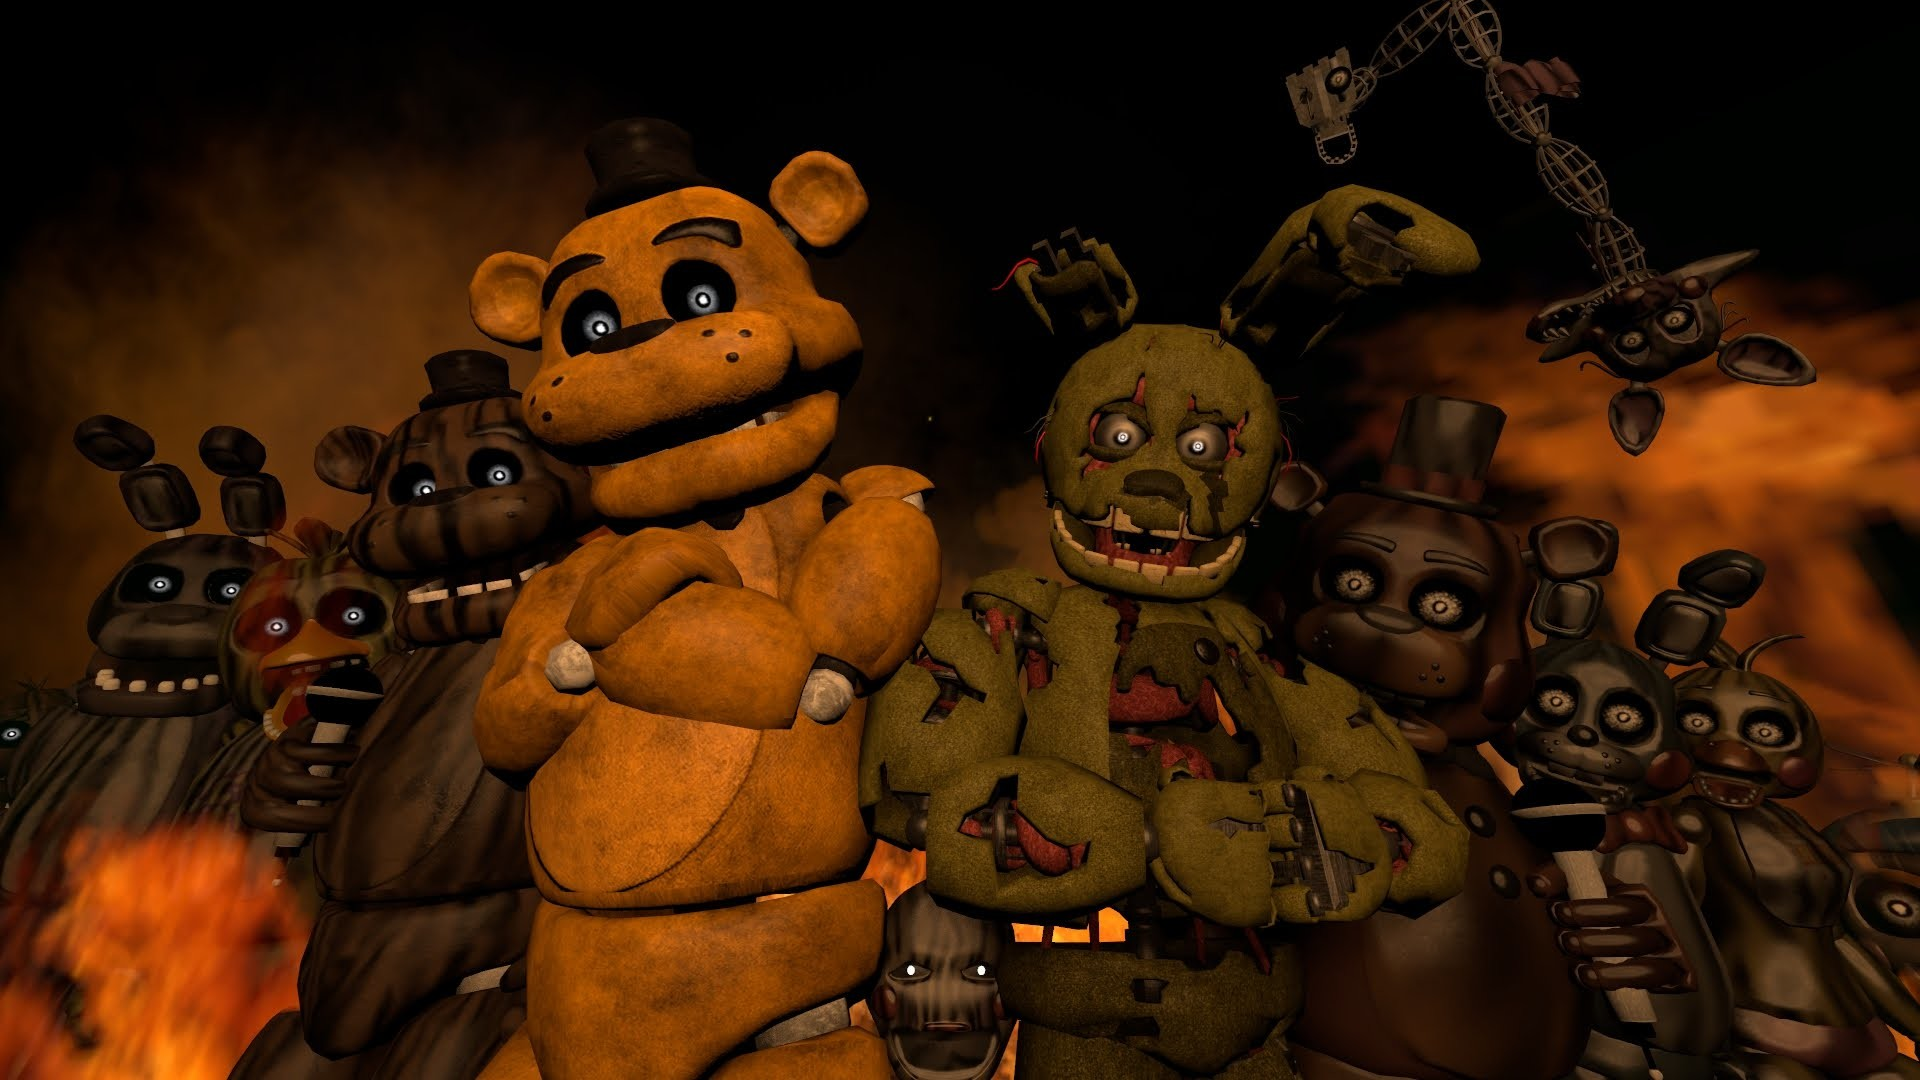 1920x1080 SFM/FNAF/Music] - Five Nights At Freddy's 3 Rap - - YouTube